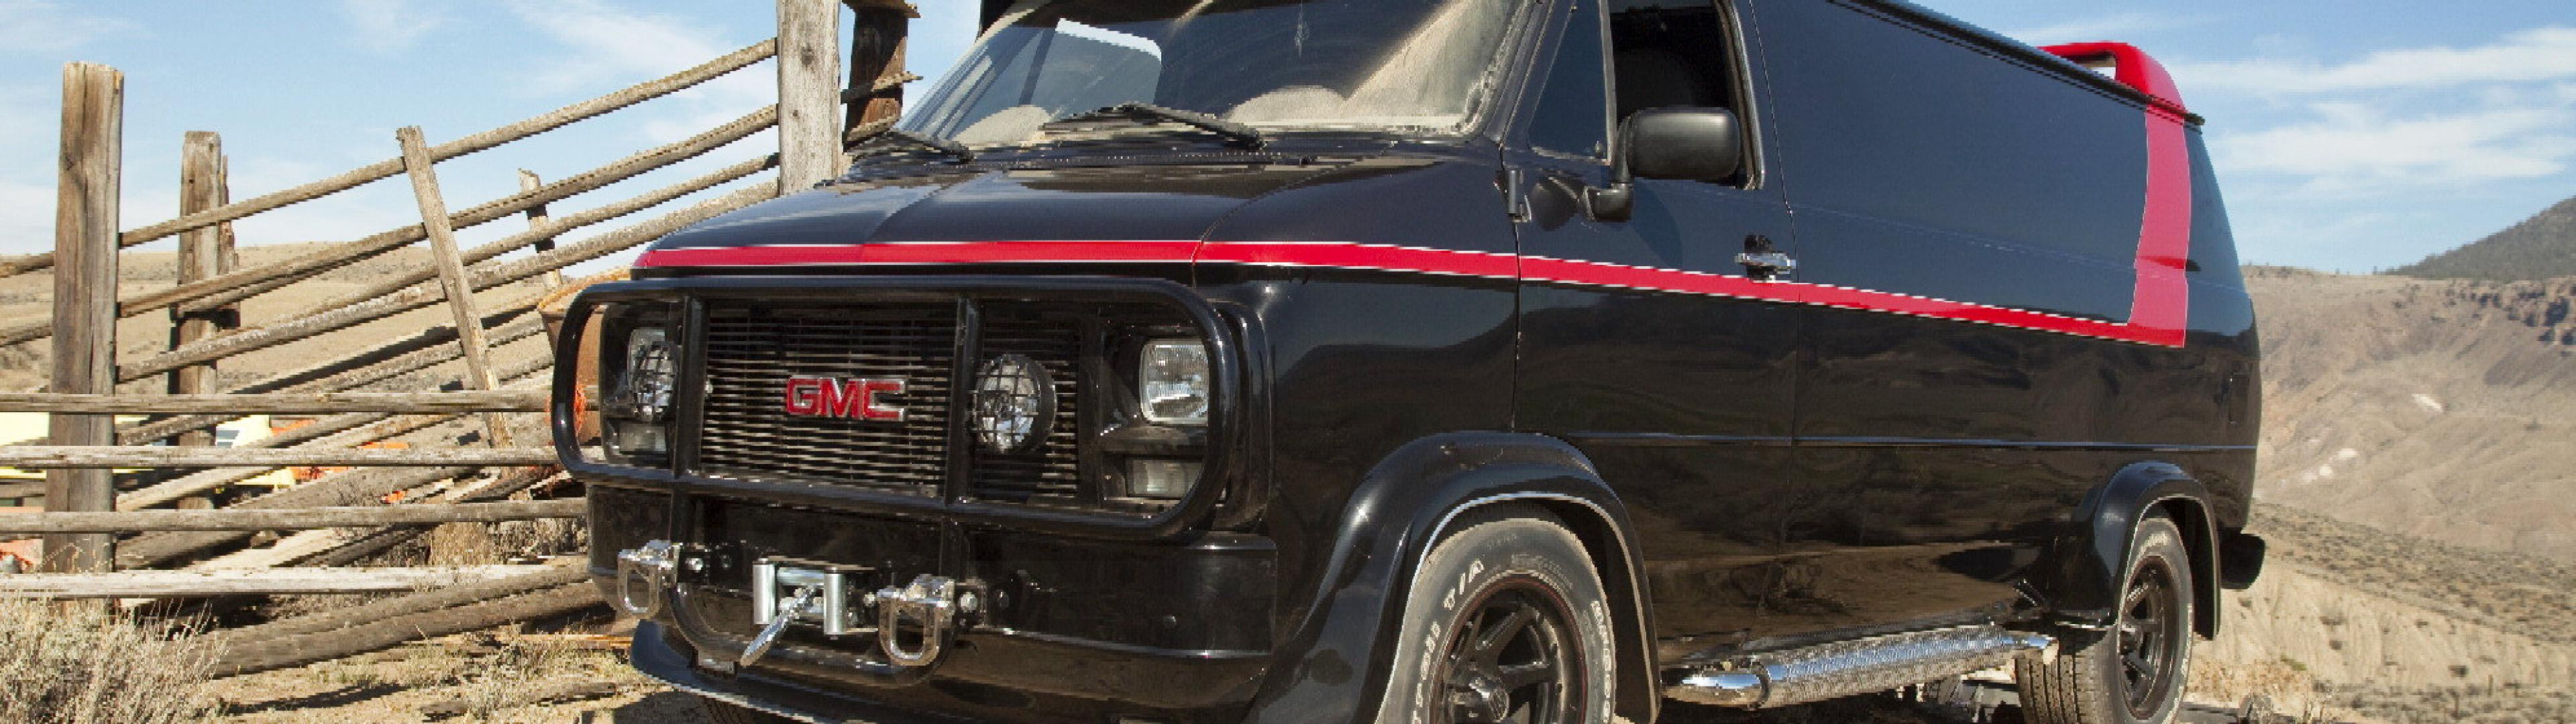 the a-team van vehicle Ultra or Dual High Definition: 2560x1440 ...